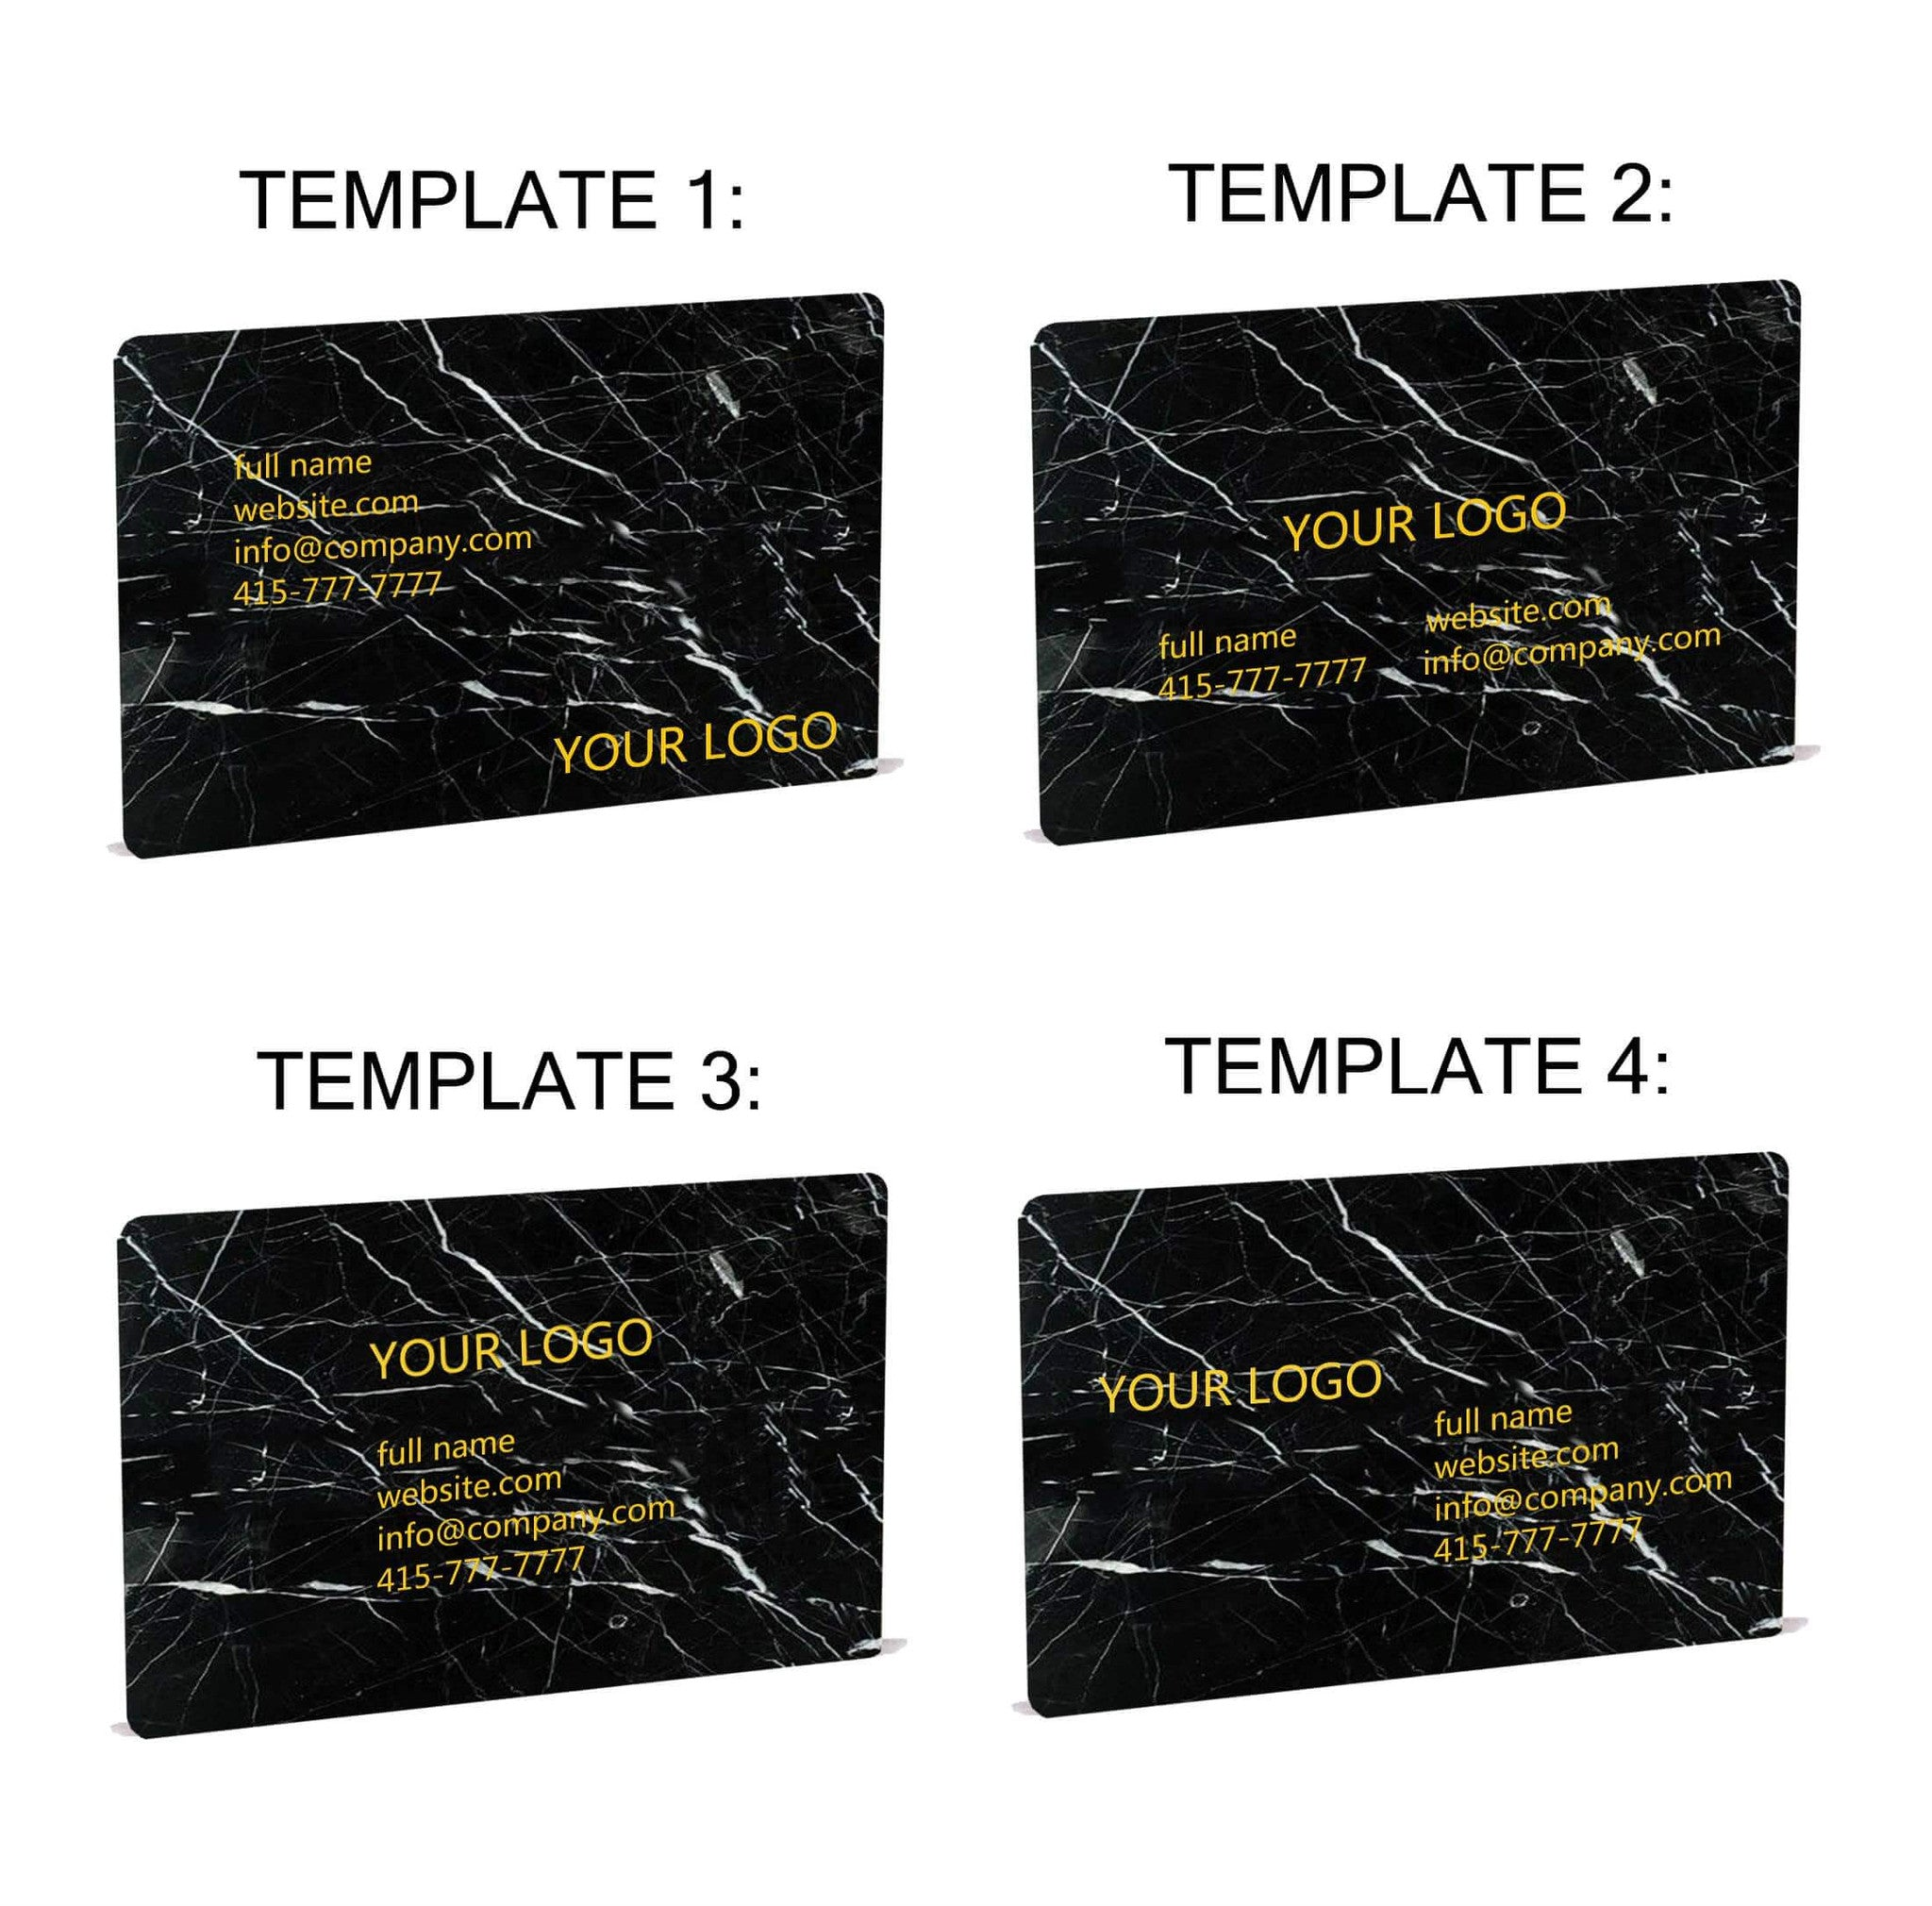 Nero marquina marble business cards mikol nero marquina marble business cards mikol 2 colourmoves